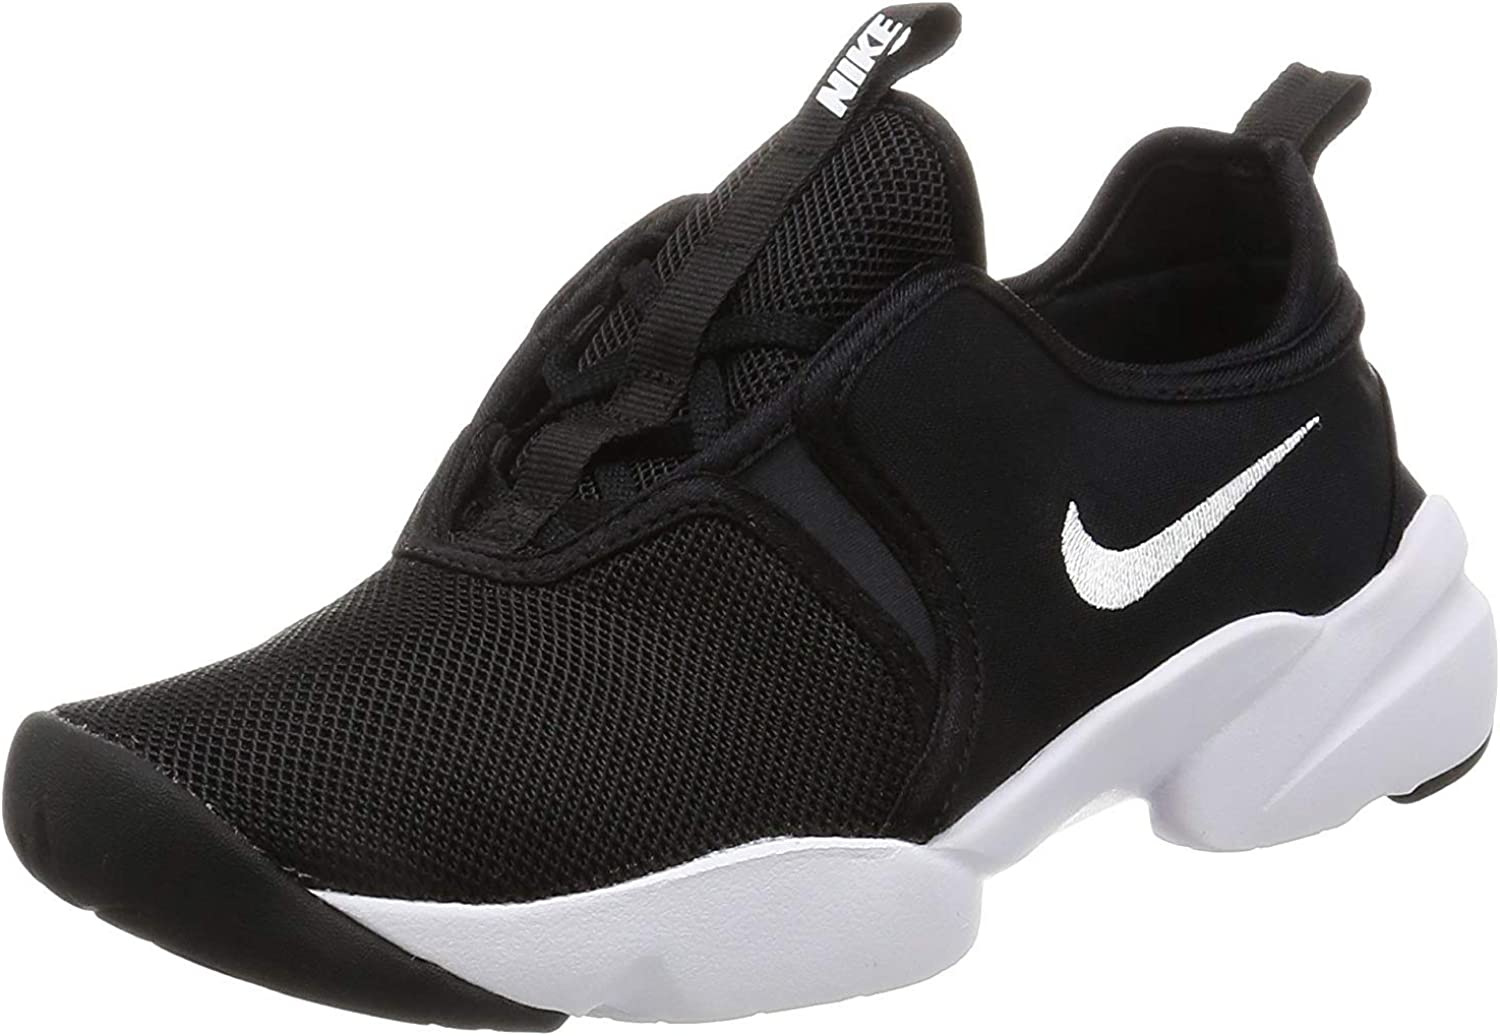 : Nike Womens Loden Low Top Lace Up Running